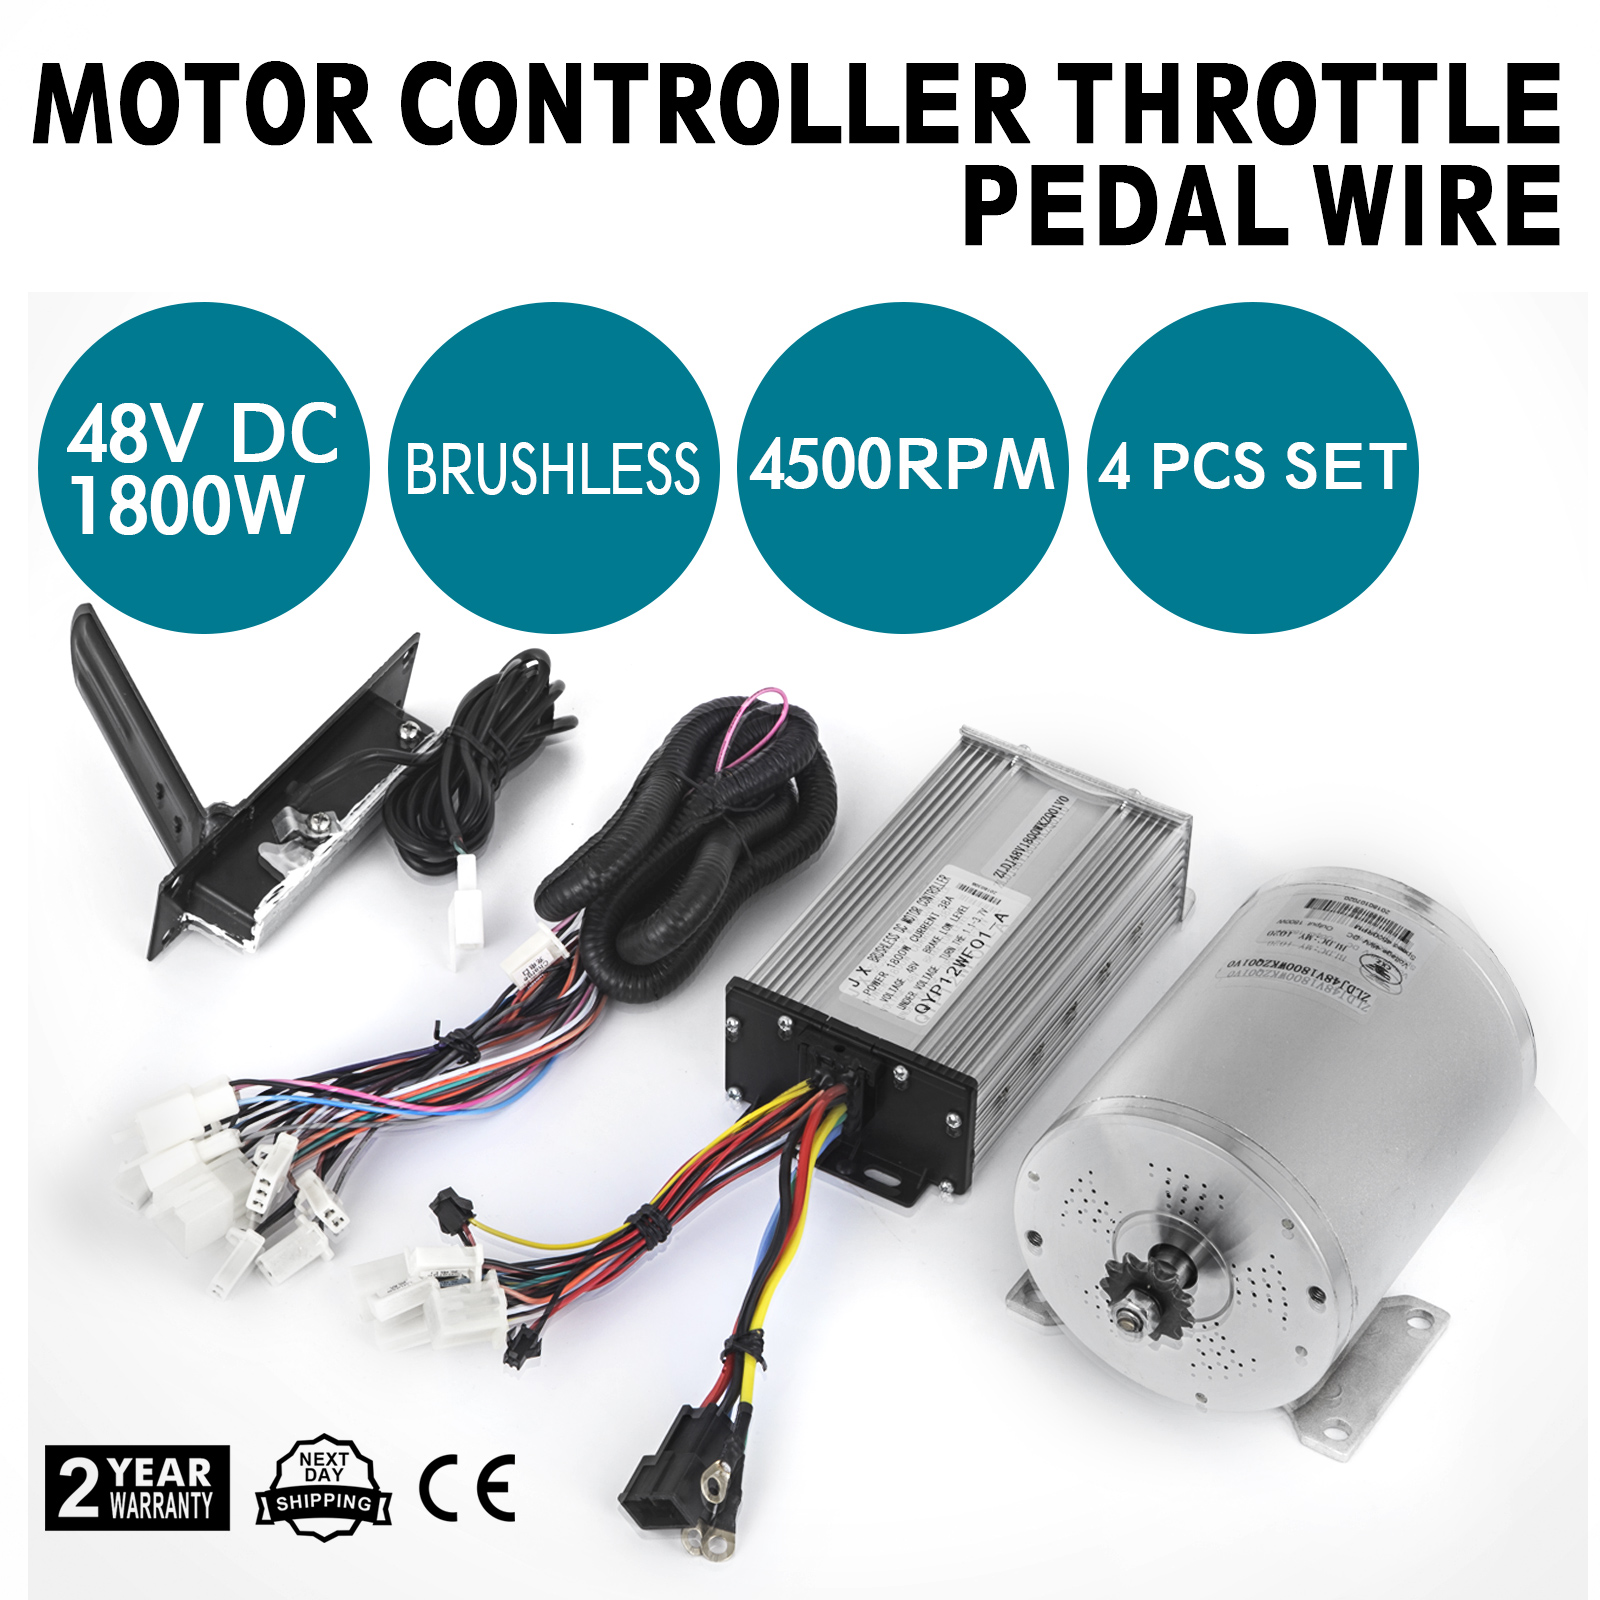 1800w 48v Brushless Motor Controller Throttle Pedal Wire Harness Electric Bicycle Bldc From Reliable Service Product Description This Is A Set Of Universal Dc